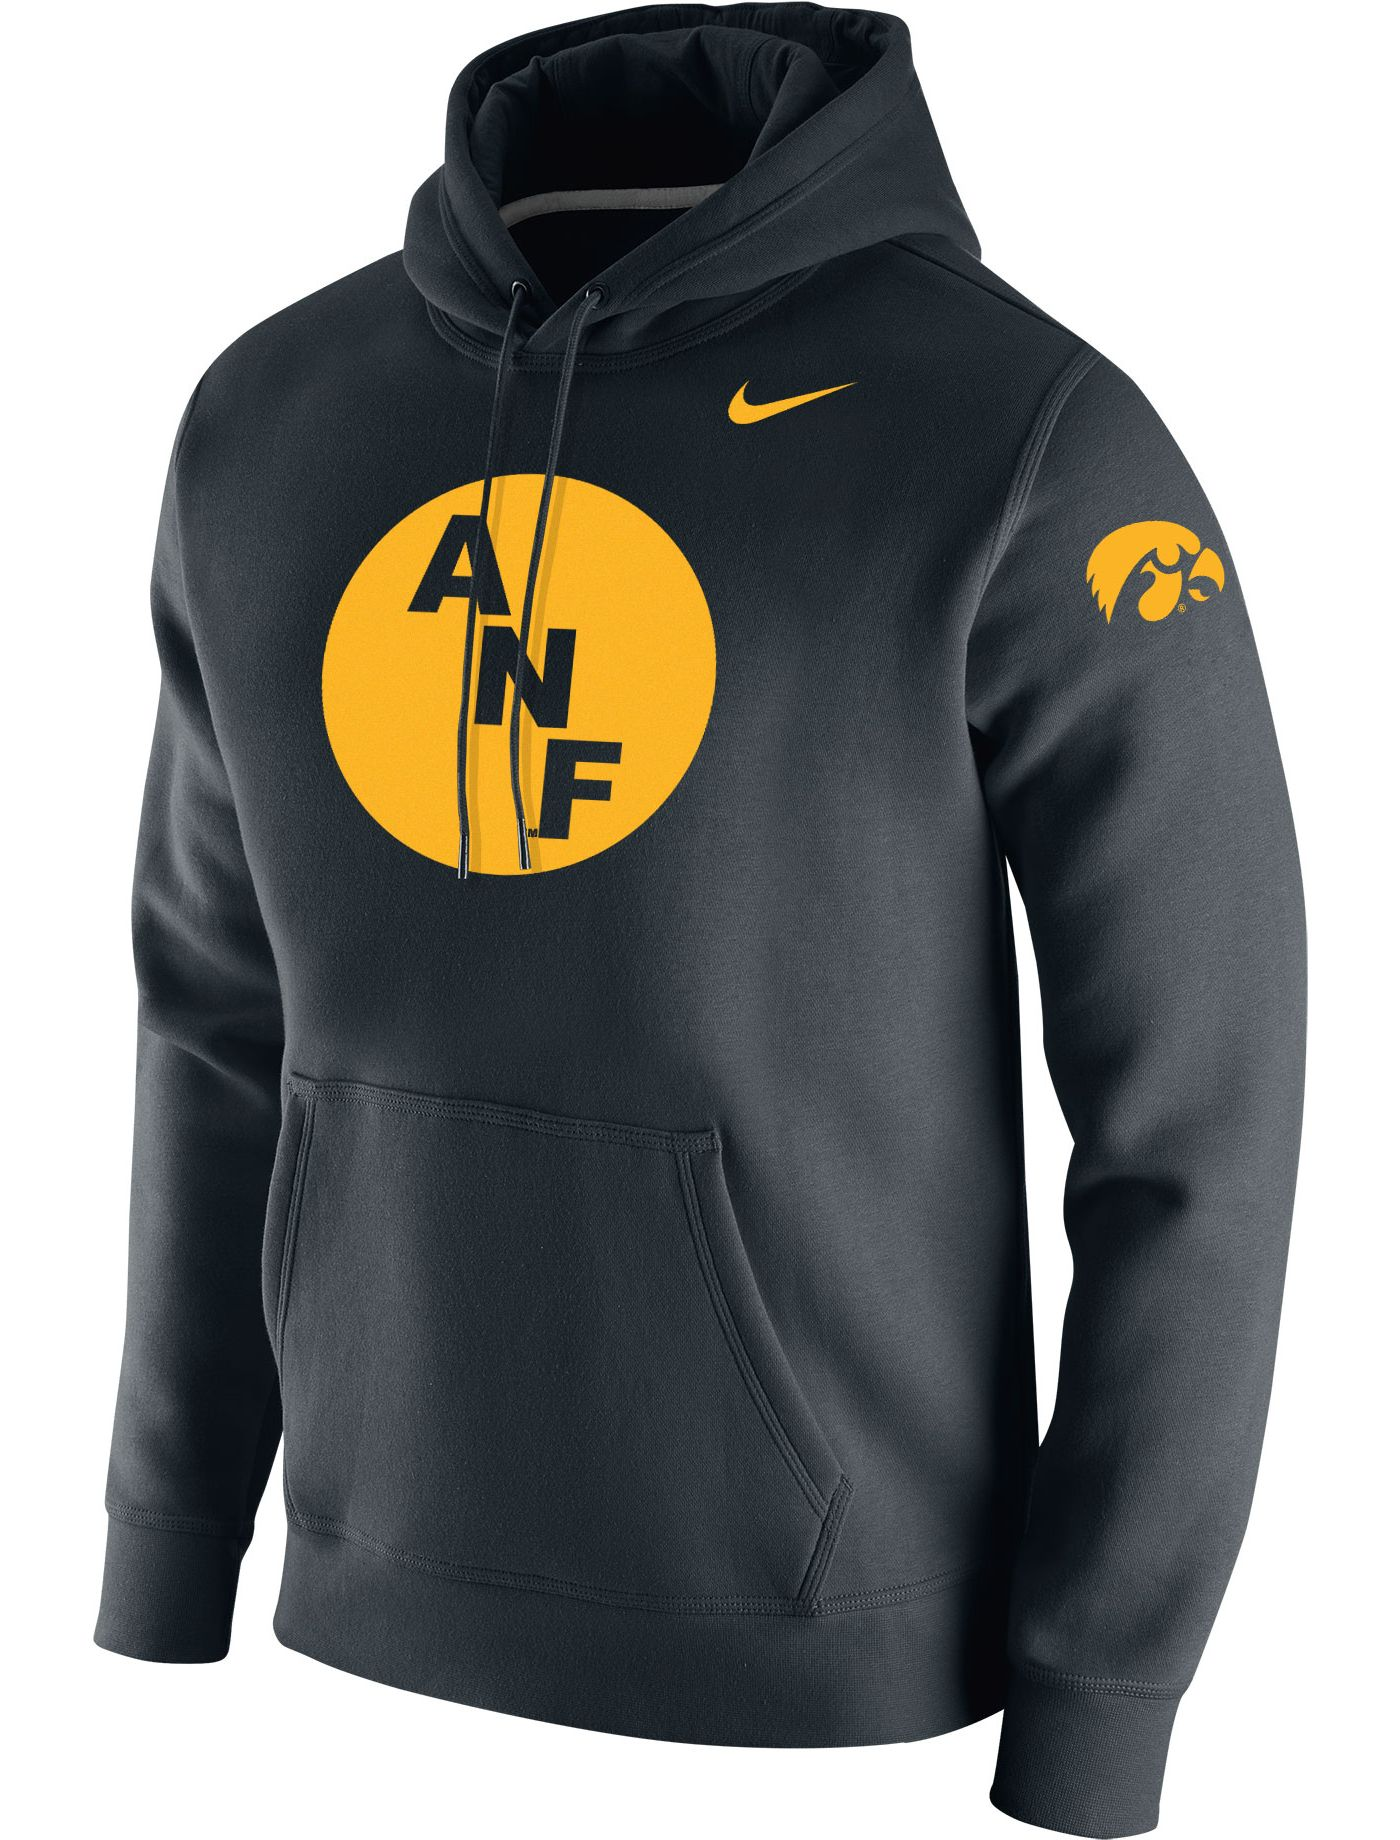 Nike Men's Iowa Hawkeyes ANF Fleece Pullover Black Hoodie